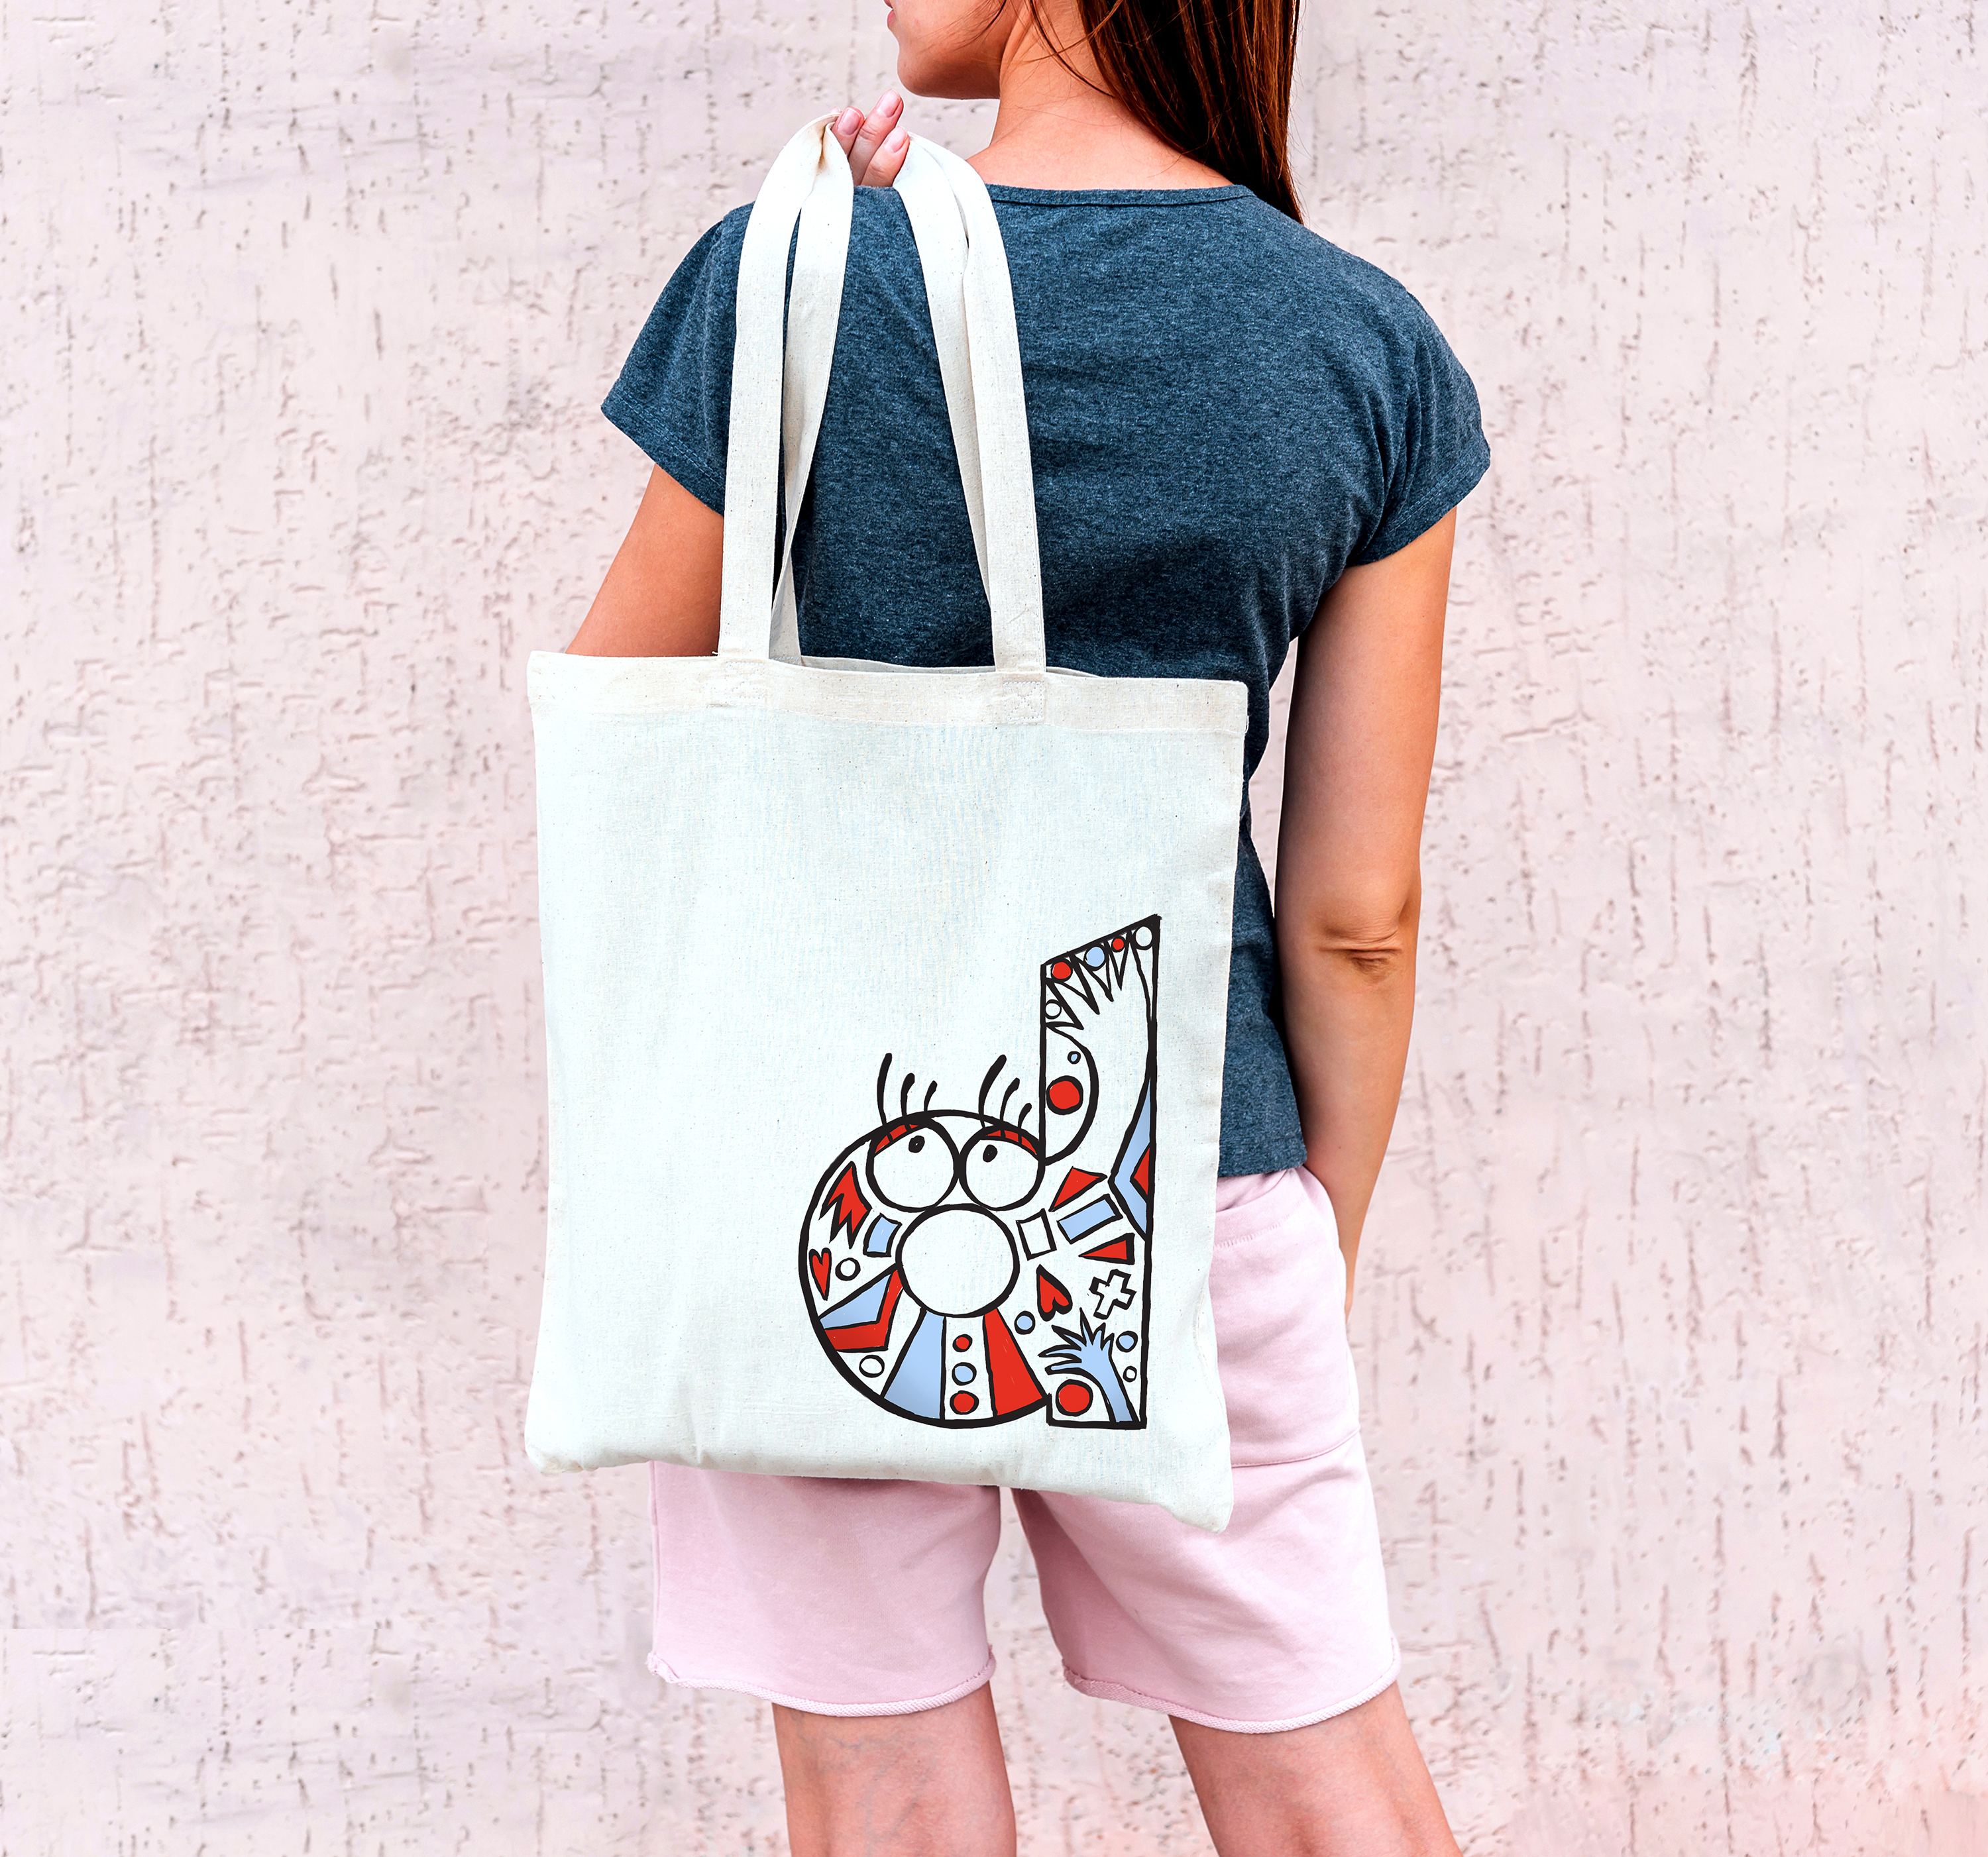 Typo collection - t-shirts & bags 2